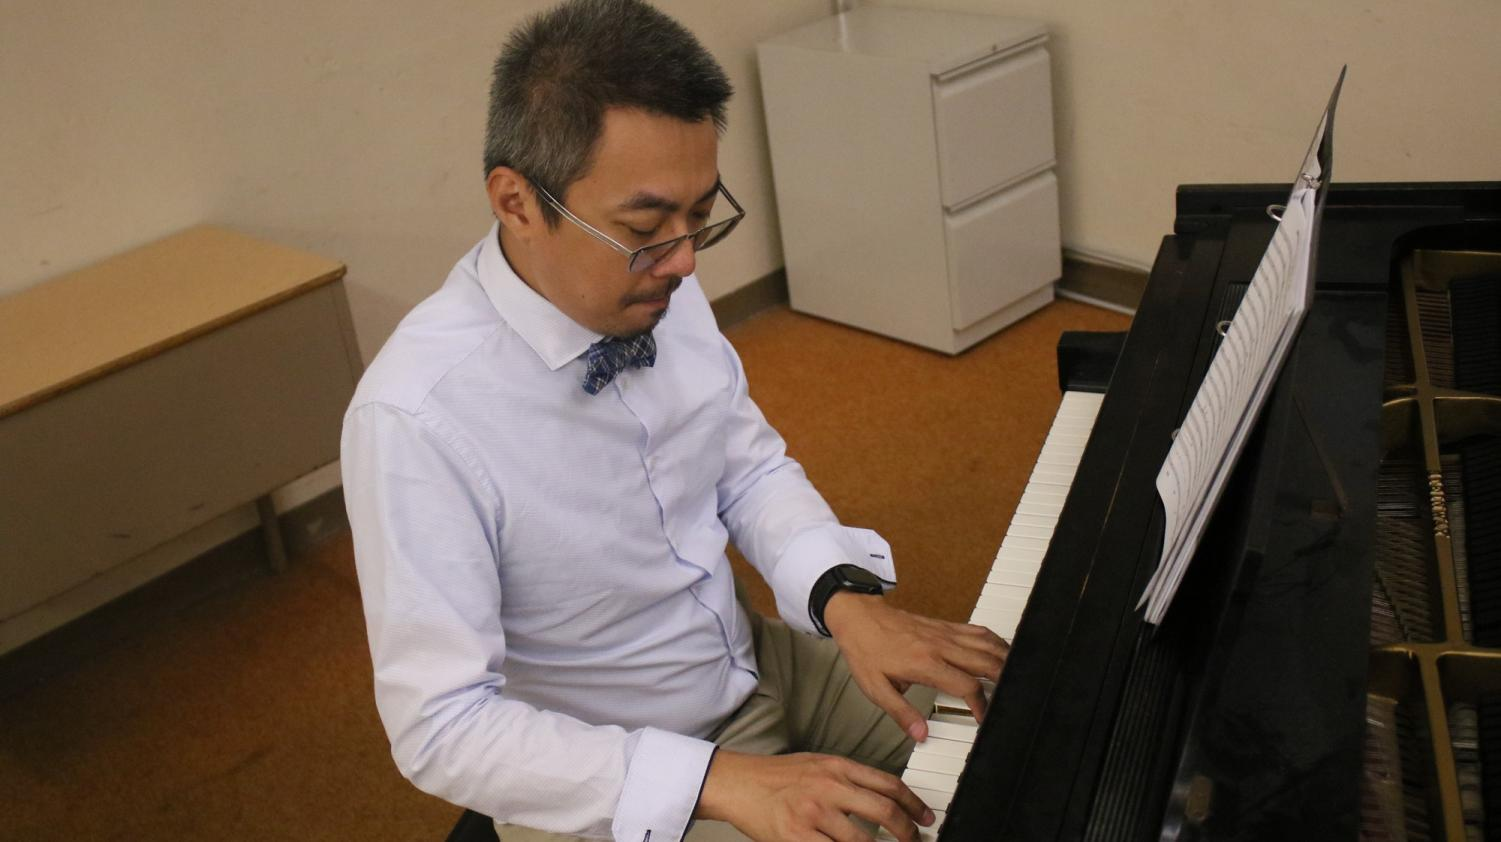 EC music instructor Alan Chan performs an impromptu piano piece in the Music Building, on Monday, April 22. Chan will conduct and play piano in his upcoming concert alongside one of the greatest wind players Guo Yazhi in the Alan Chan Jazz Orchestra with Guo Yazhi concert on May 10 at the Marsee Auditorium. Photo credit: Rosemary Montalvo